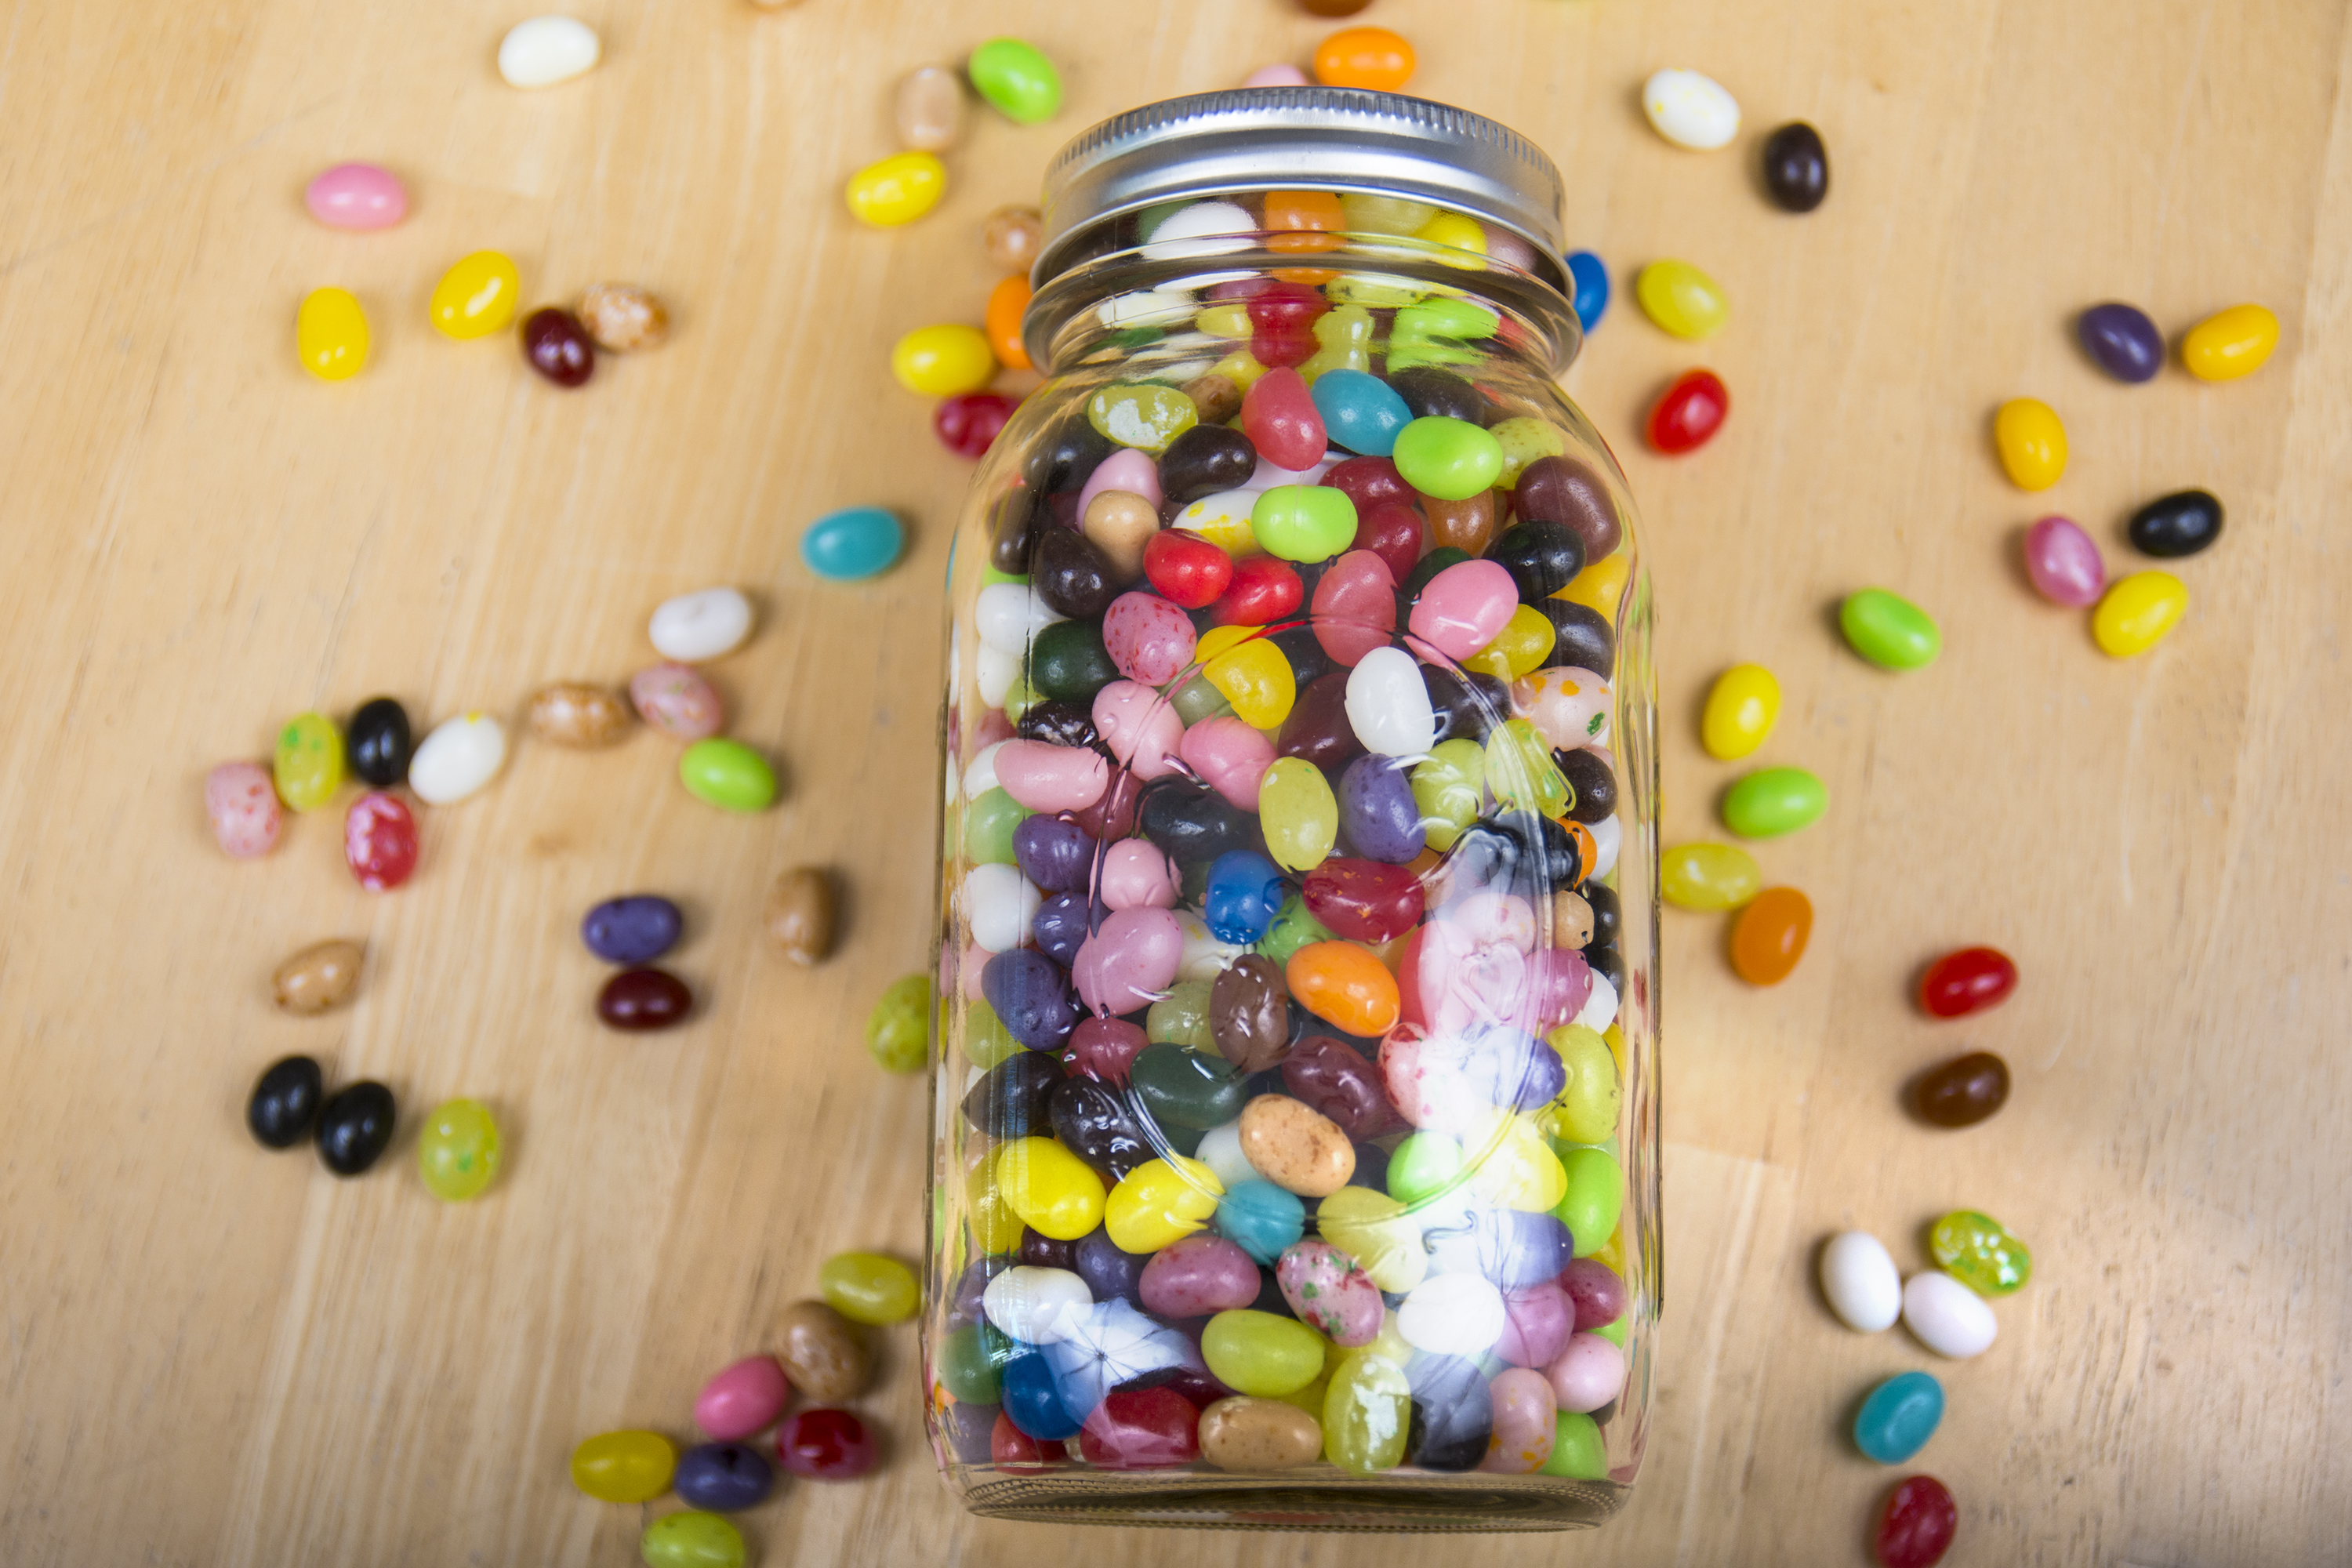 How To Count Jelly Beans In A Jar